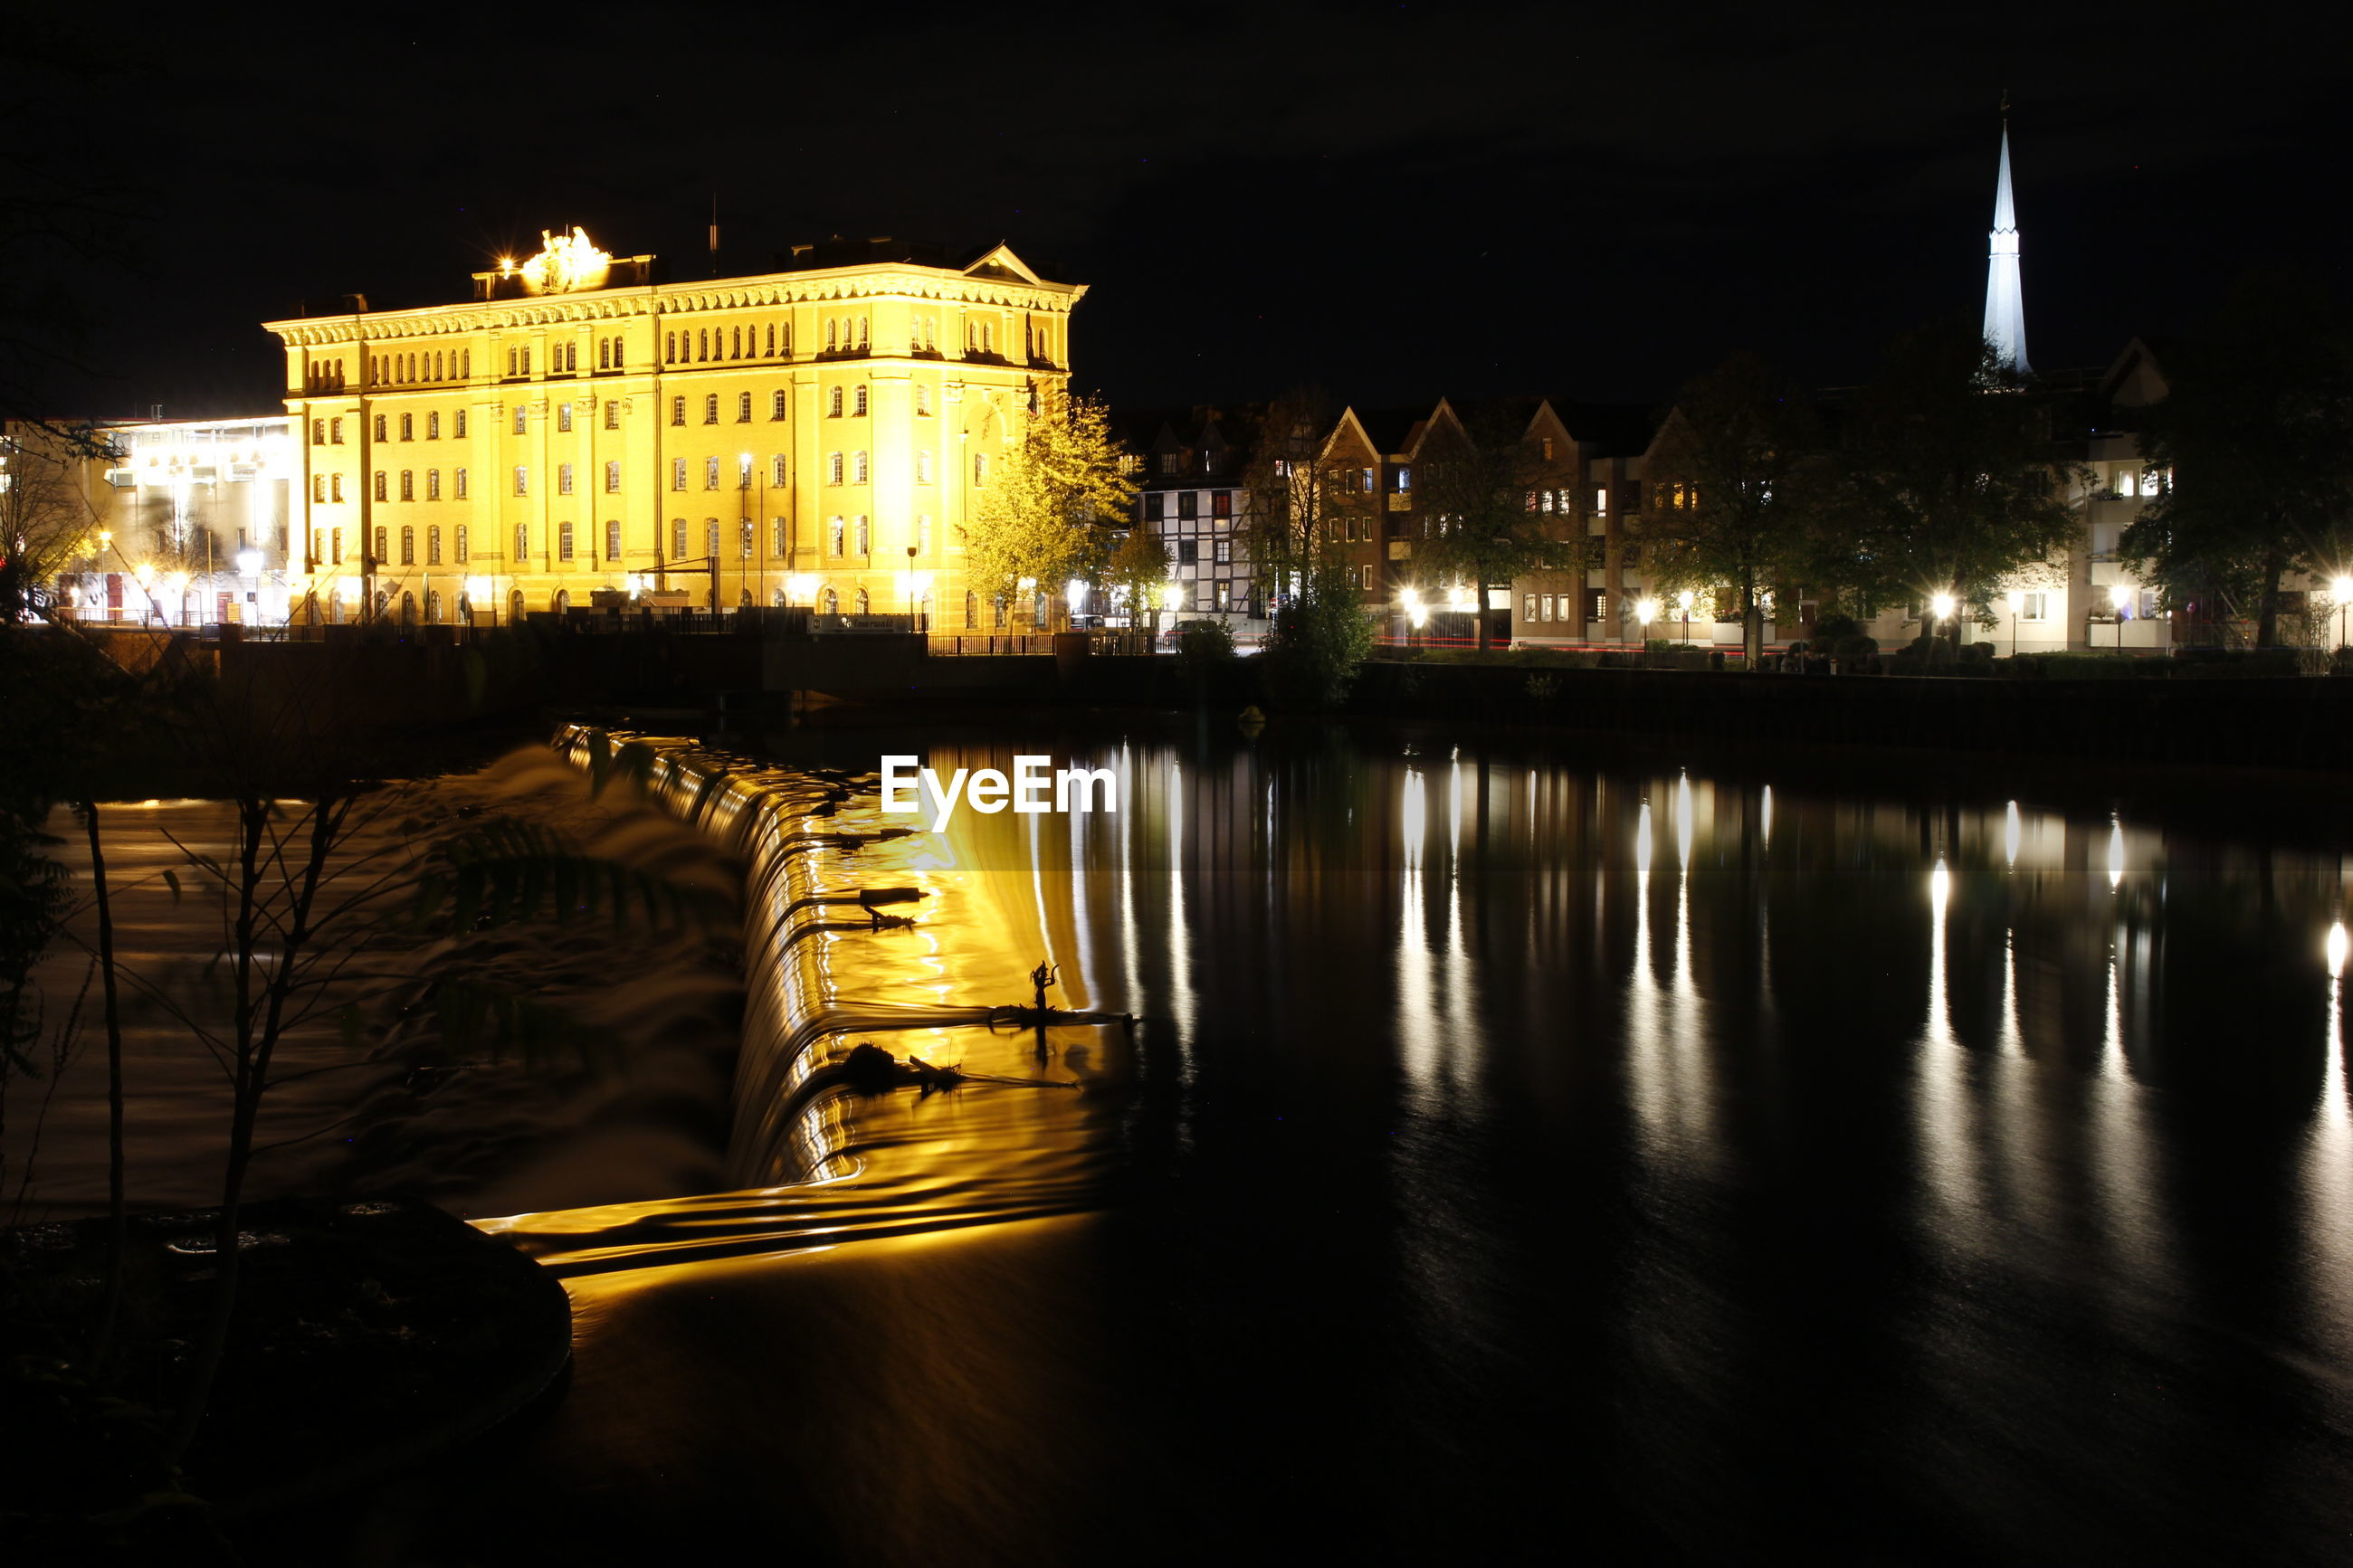 Reflection of buildings in river at night